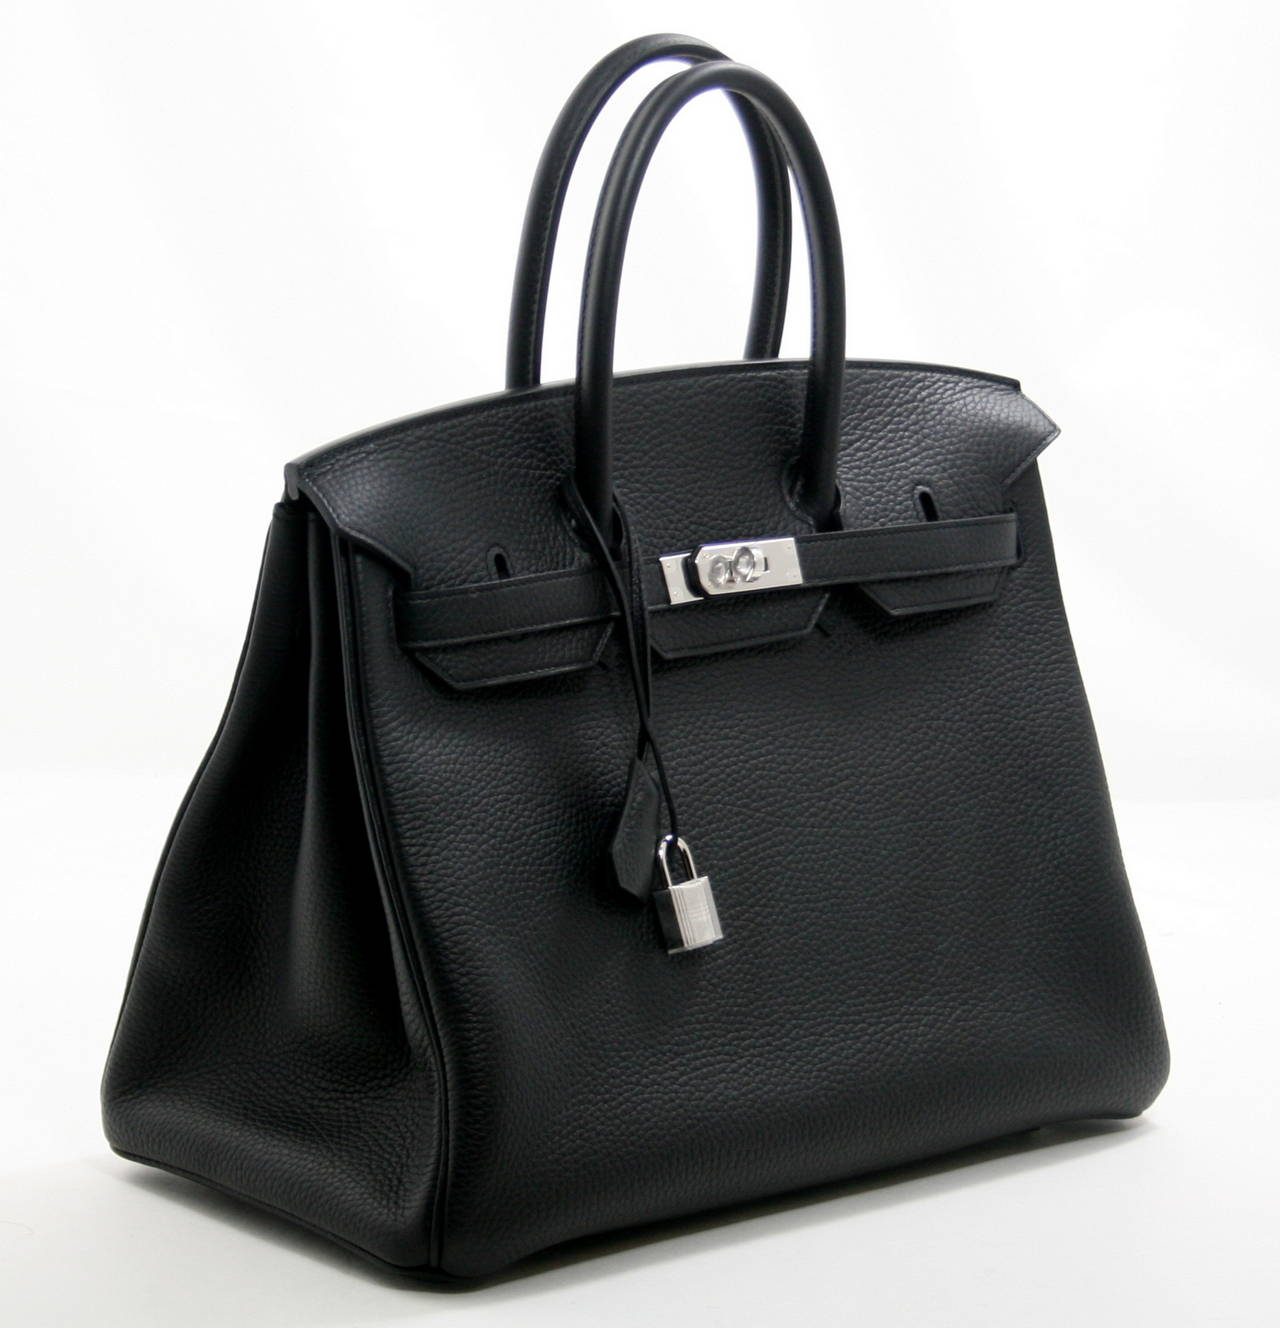 Herm��s Black Togo Leather 35 cm Birkin Bag PHW at 1stdibs